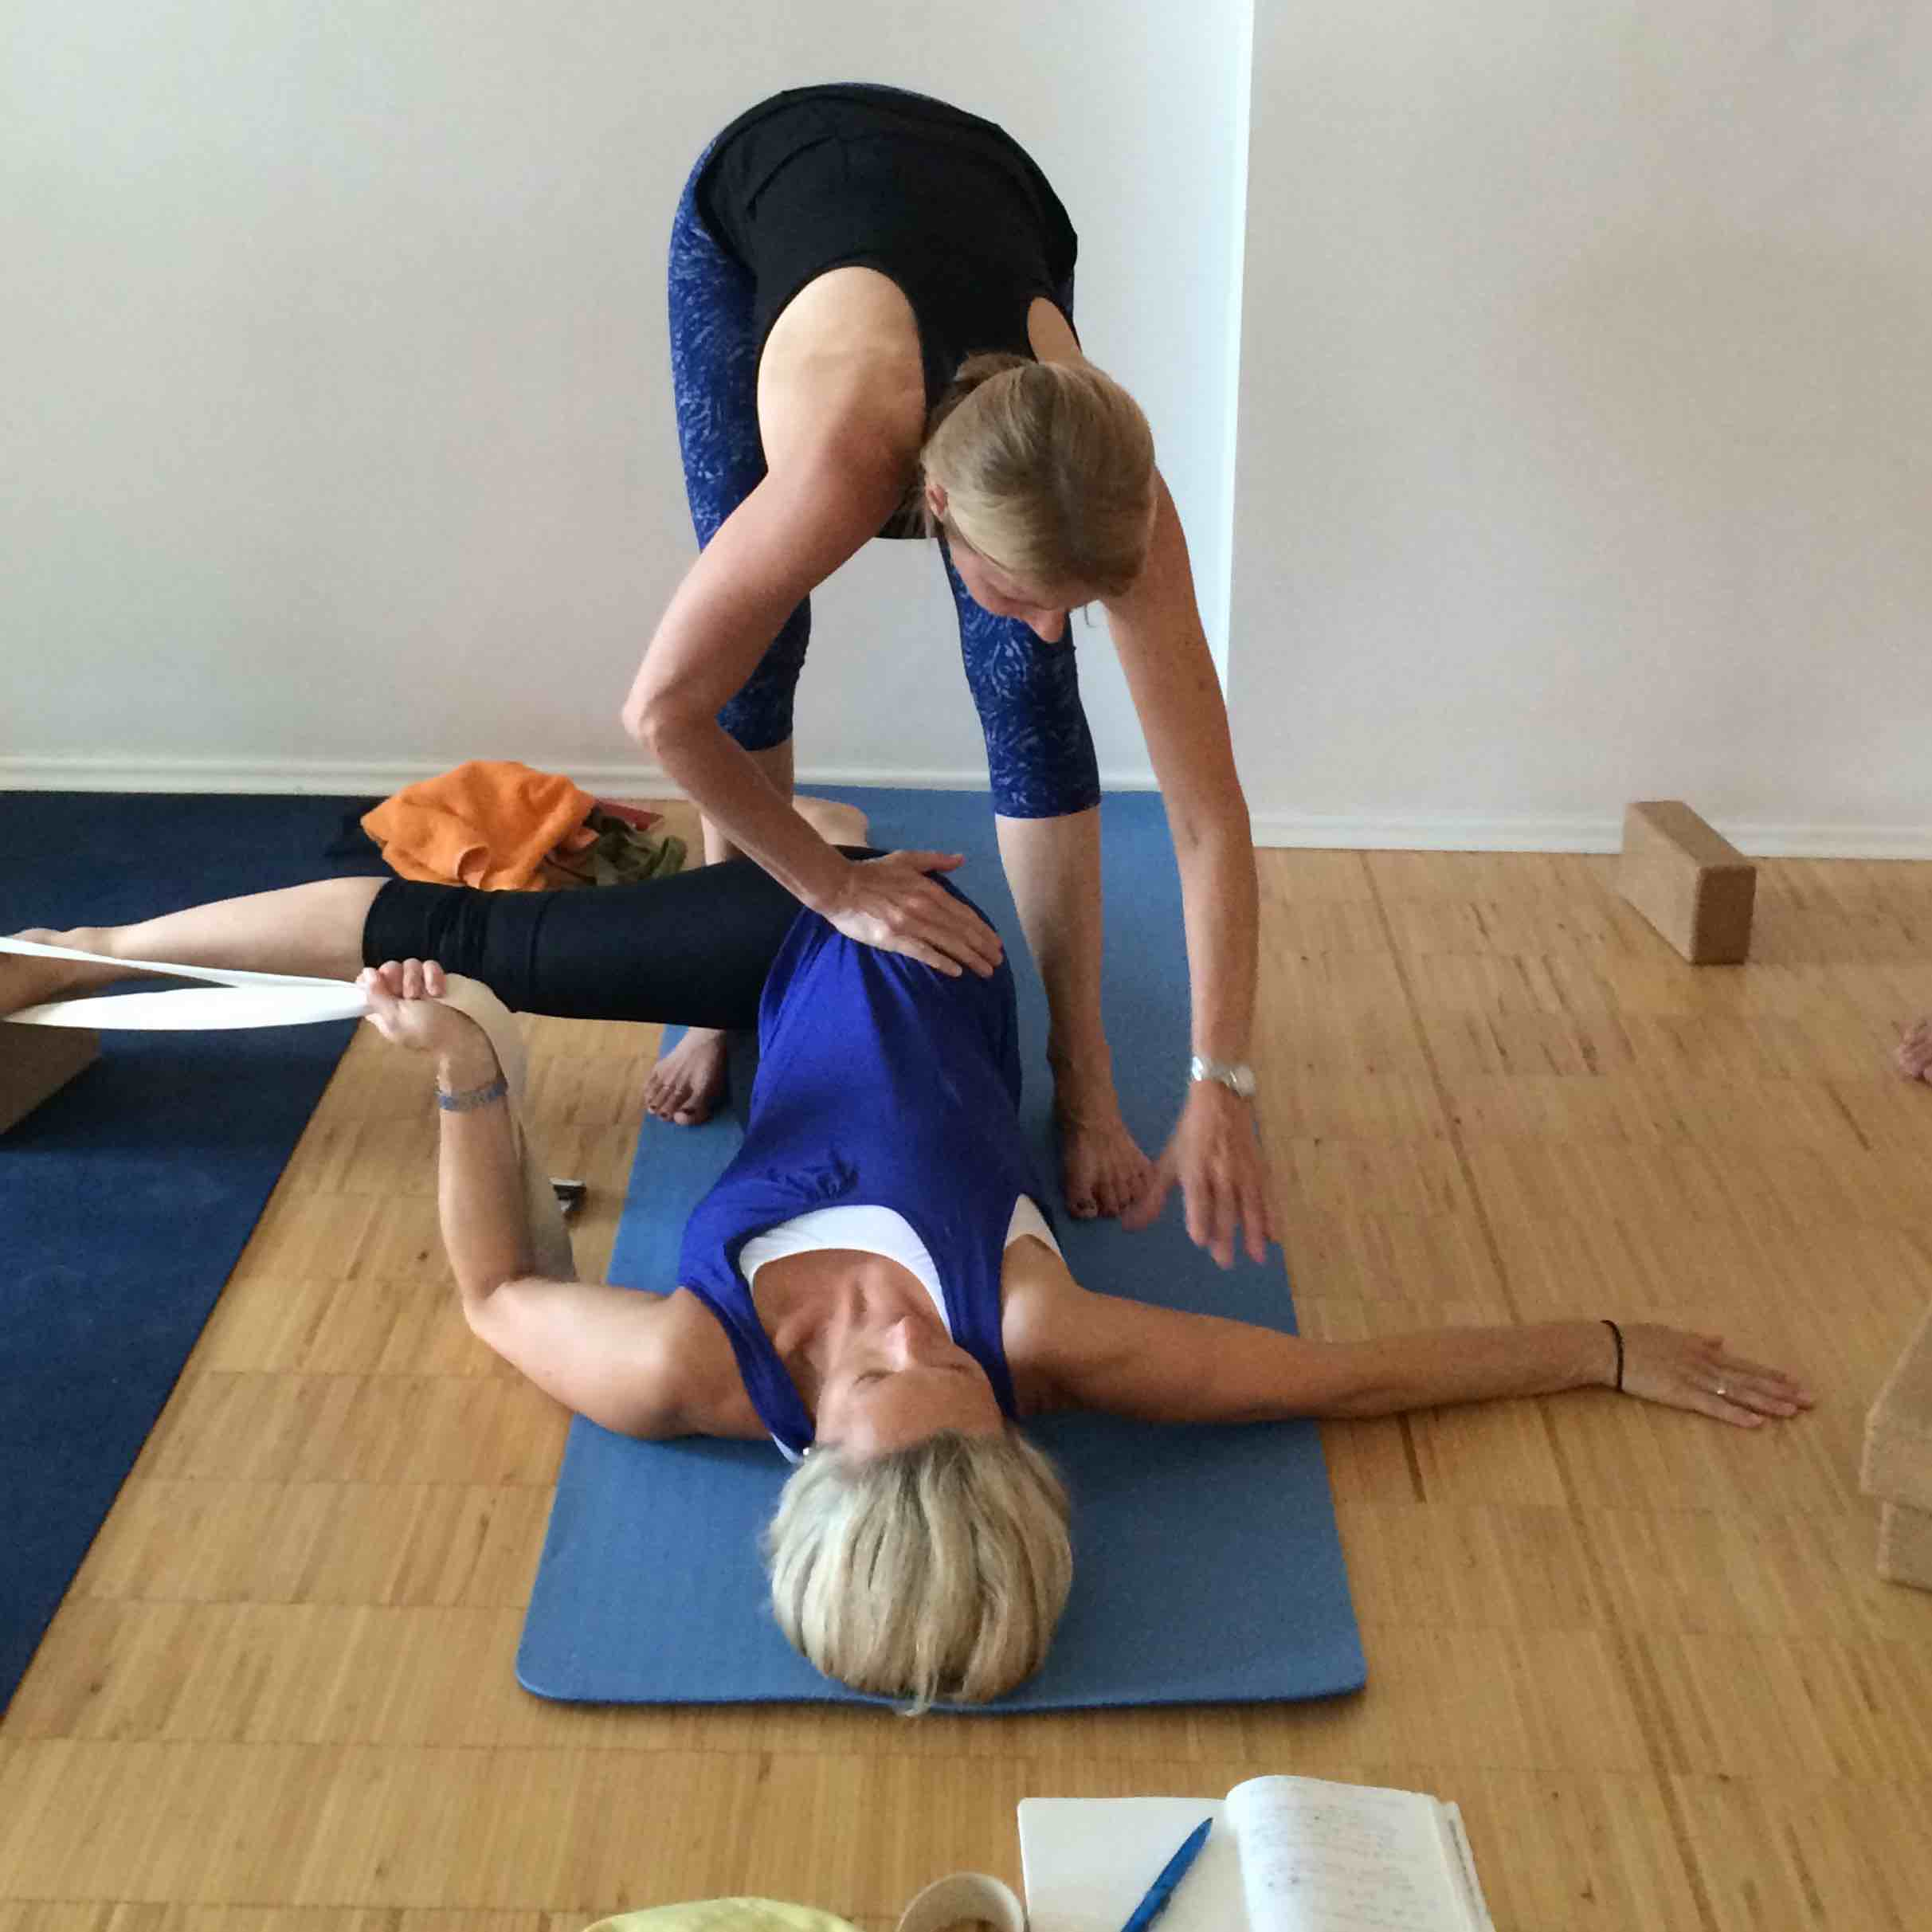 erika helping yoga student in a laying down pose